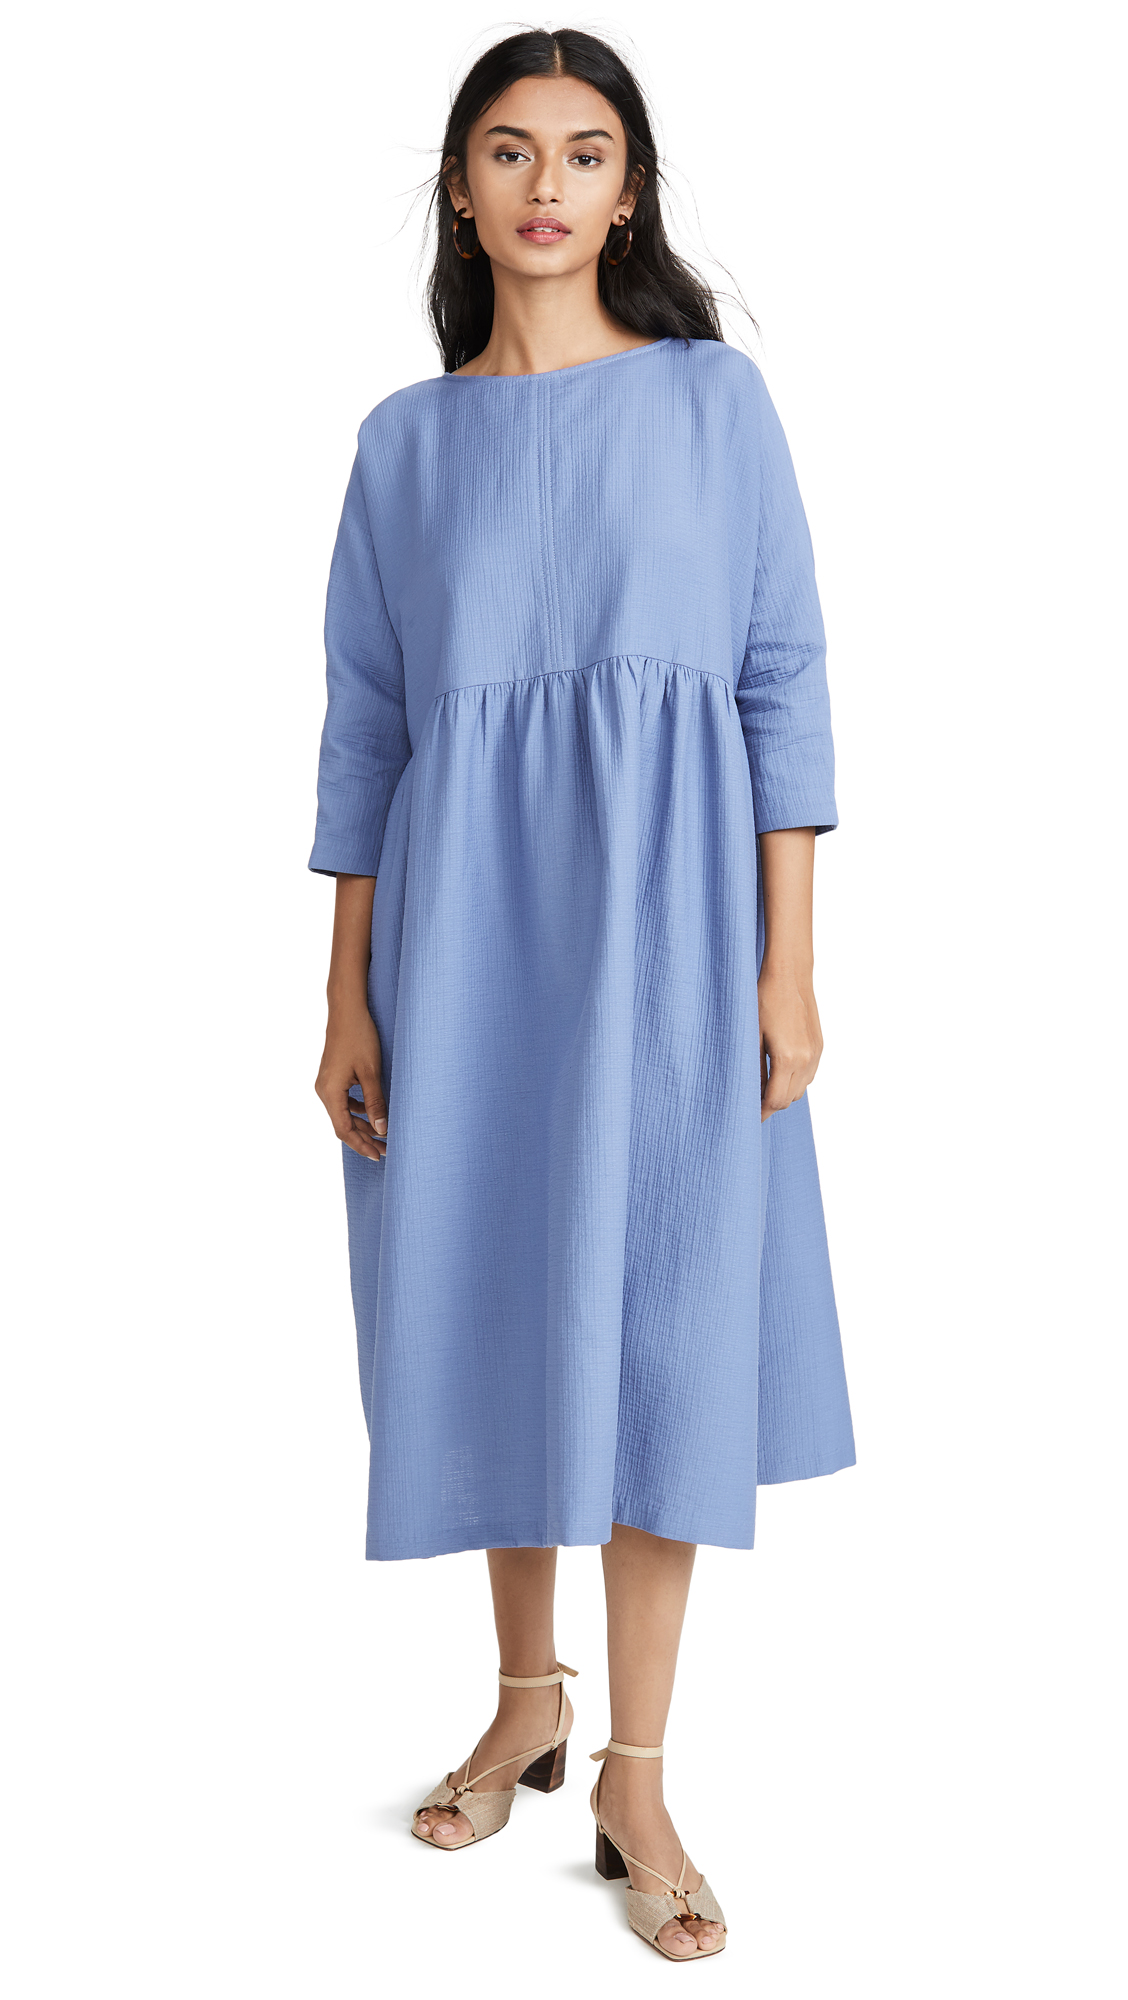 Rachel Comey Oust Dress - 40% Off Sale